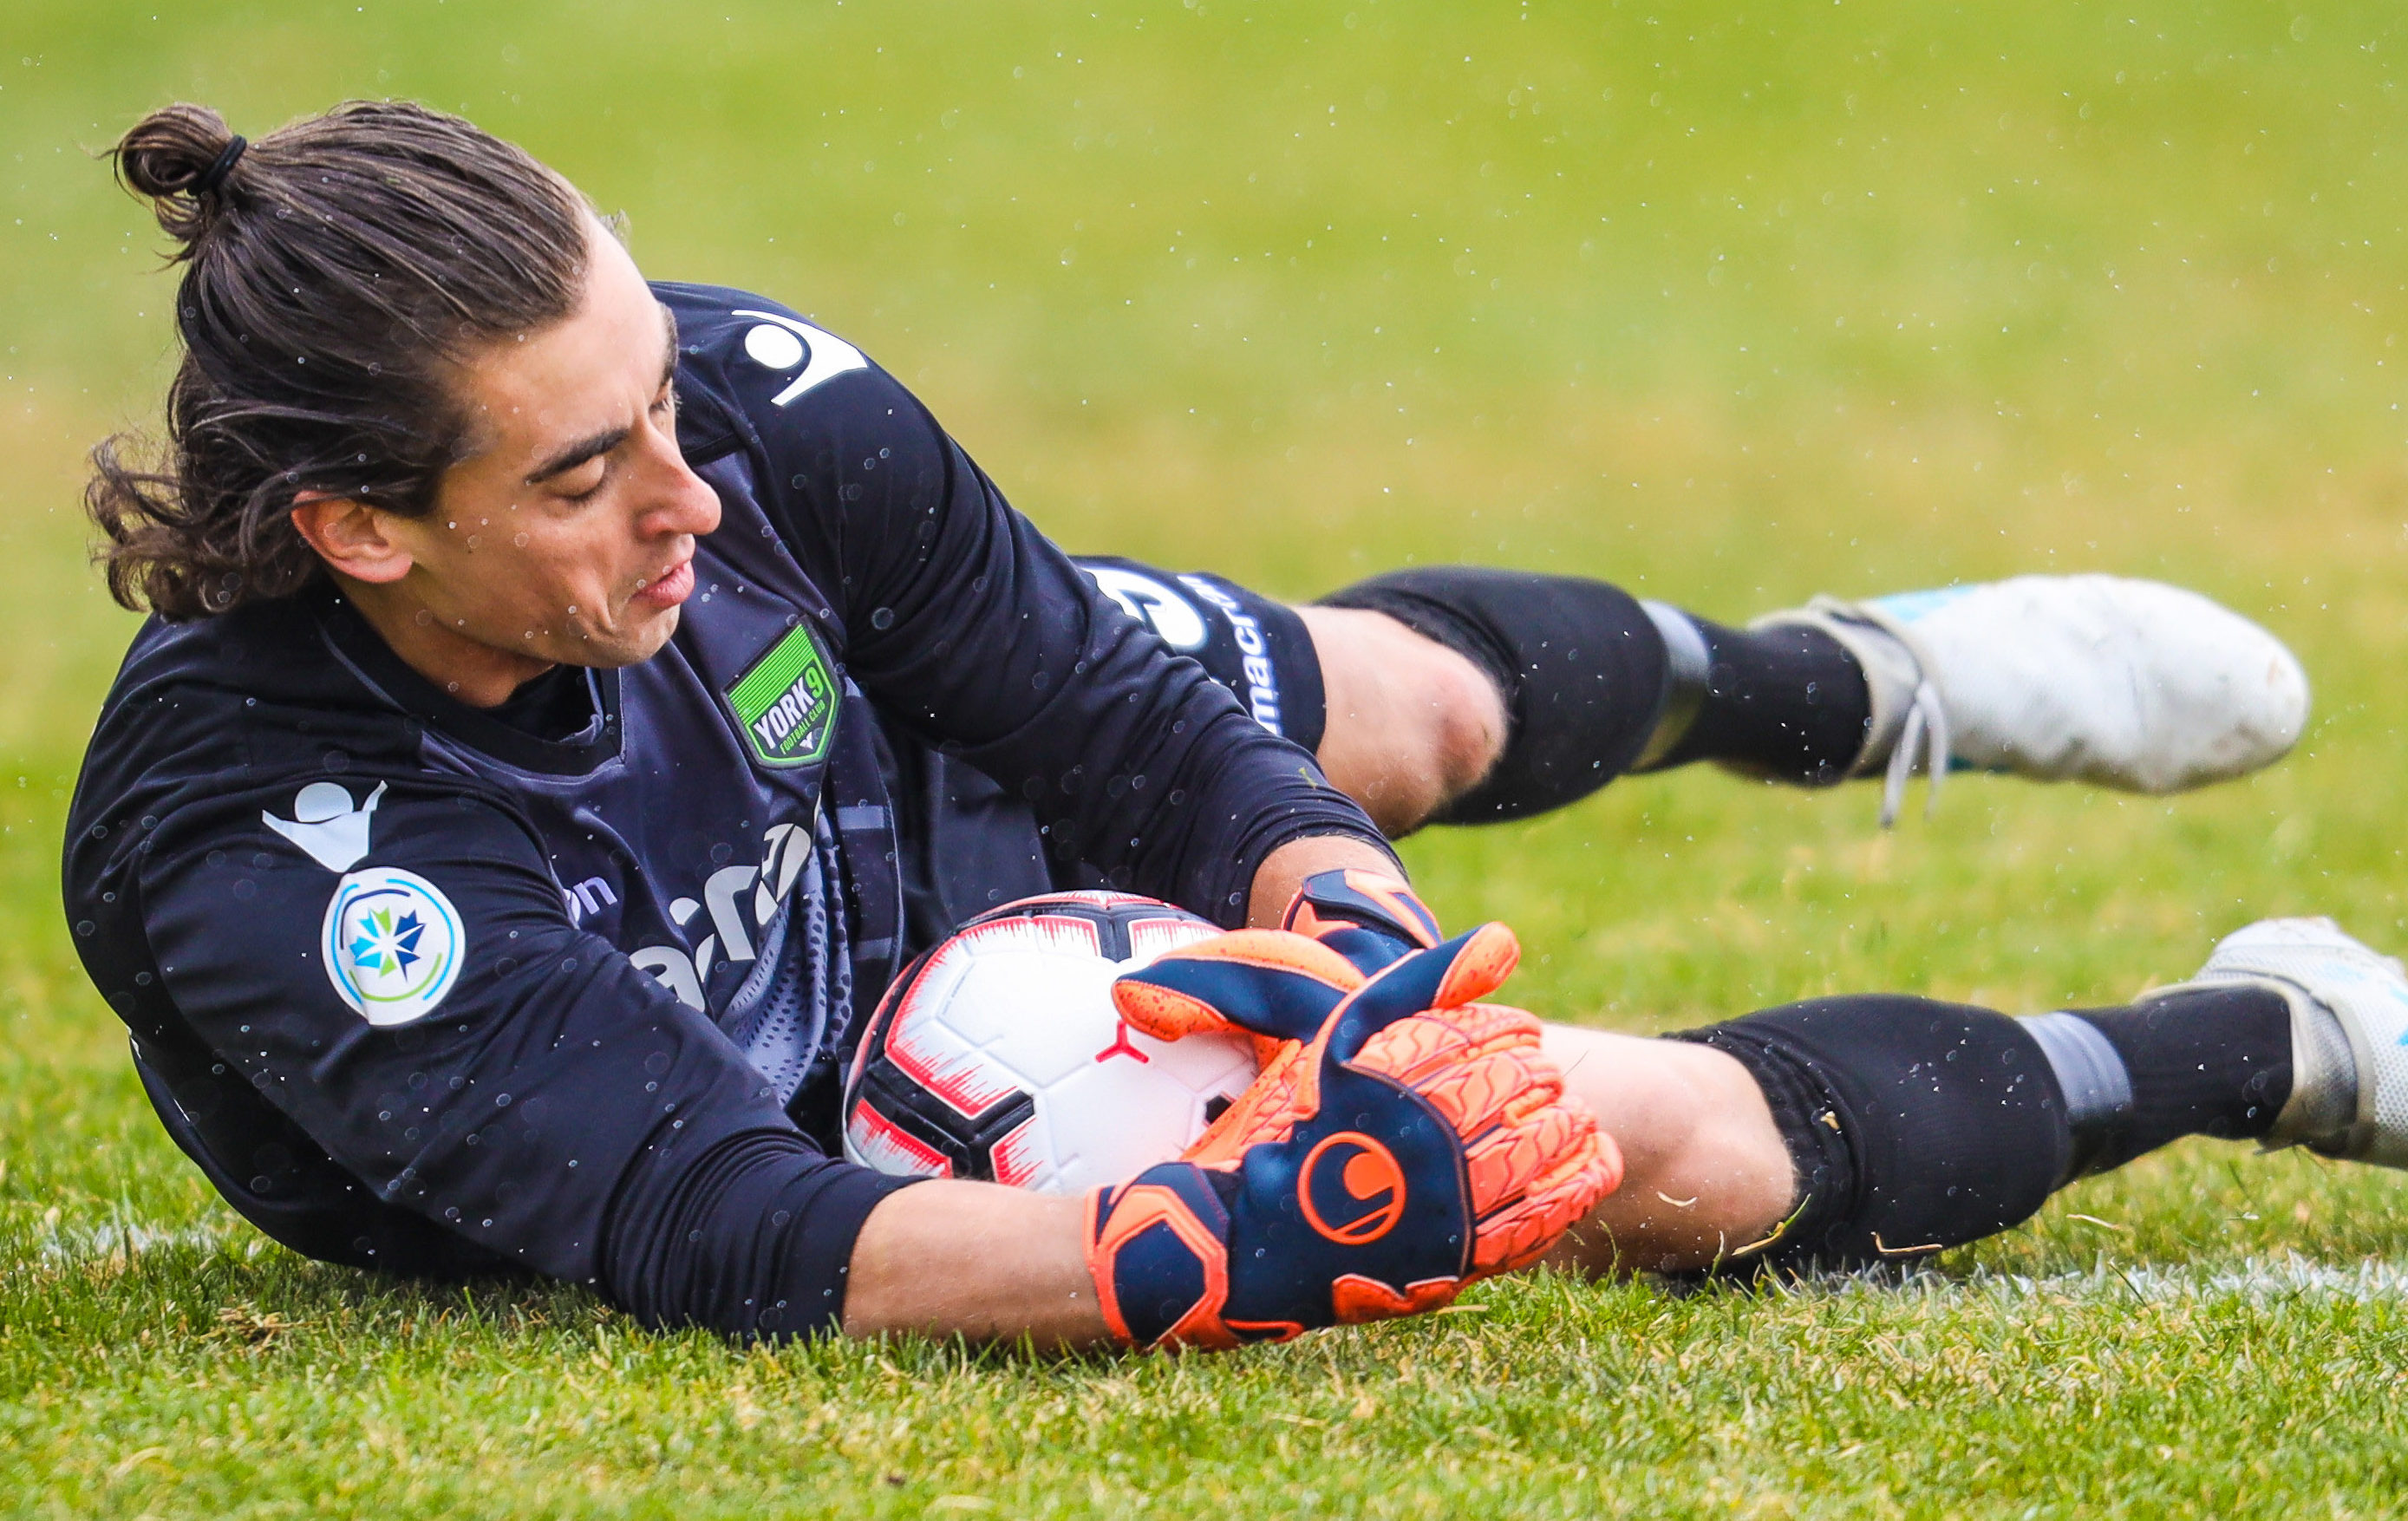 York9 FC goalkeeper Matthew Silva (1) makes a save against the Cavalry FC during the first half during a Canadian Premier League soccer match at Spruce Meadows. (Photo: Sergei Belski-USA TODAY Sports for CPL).